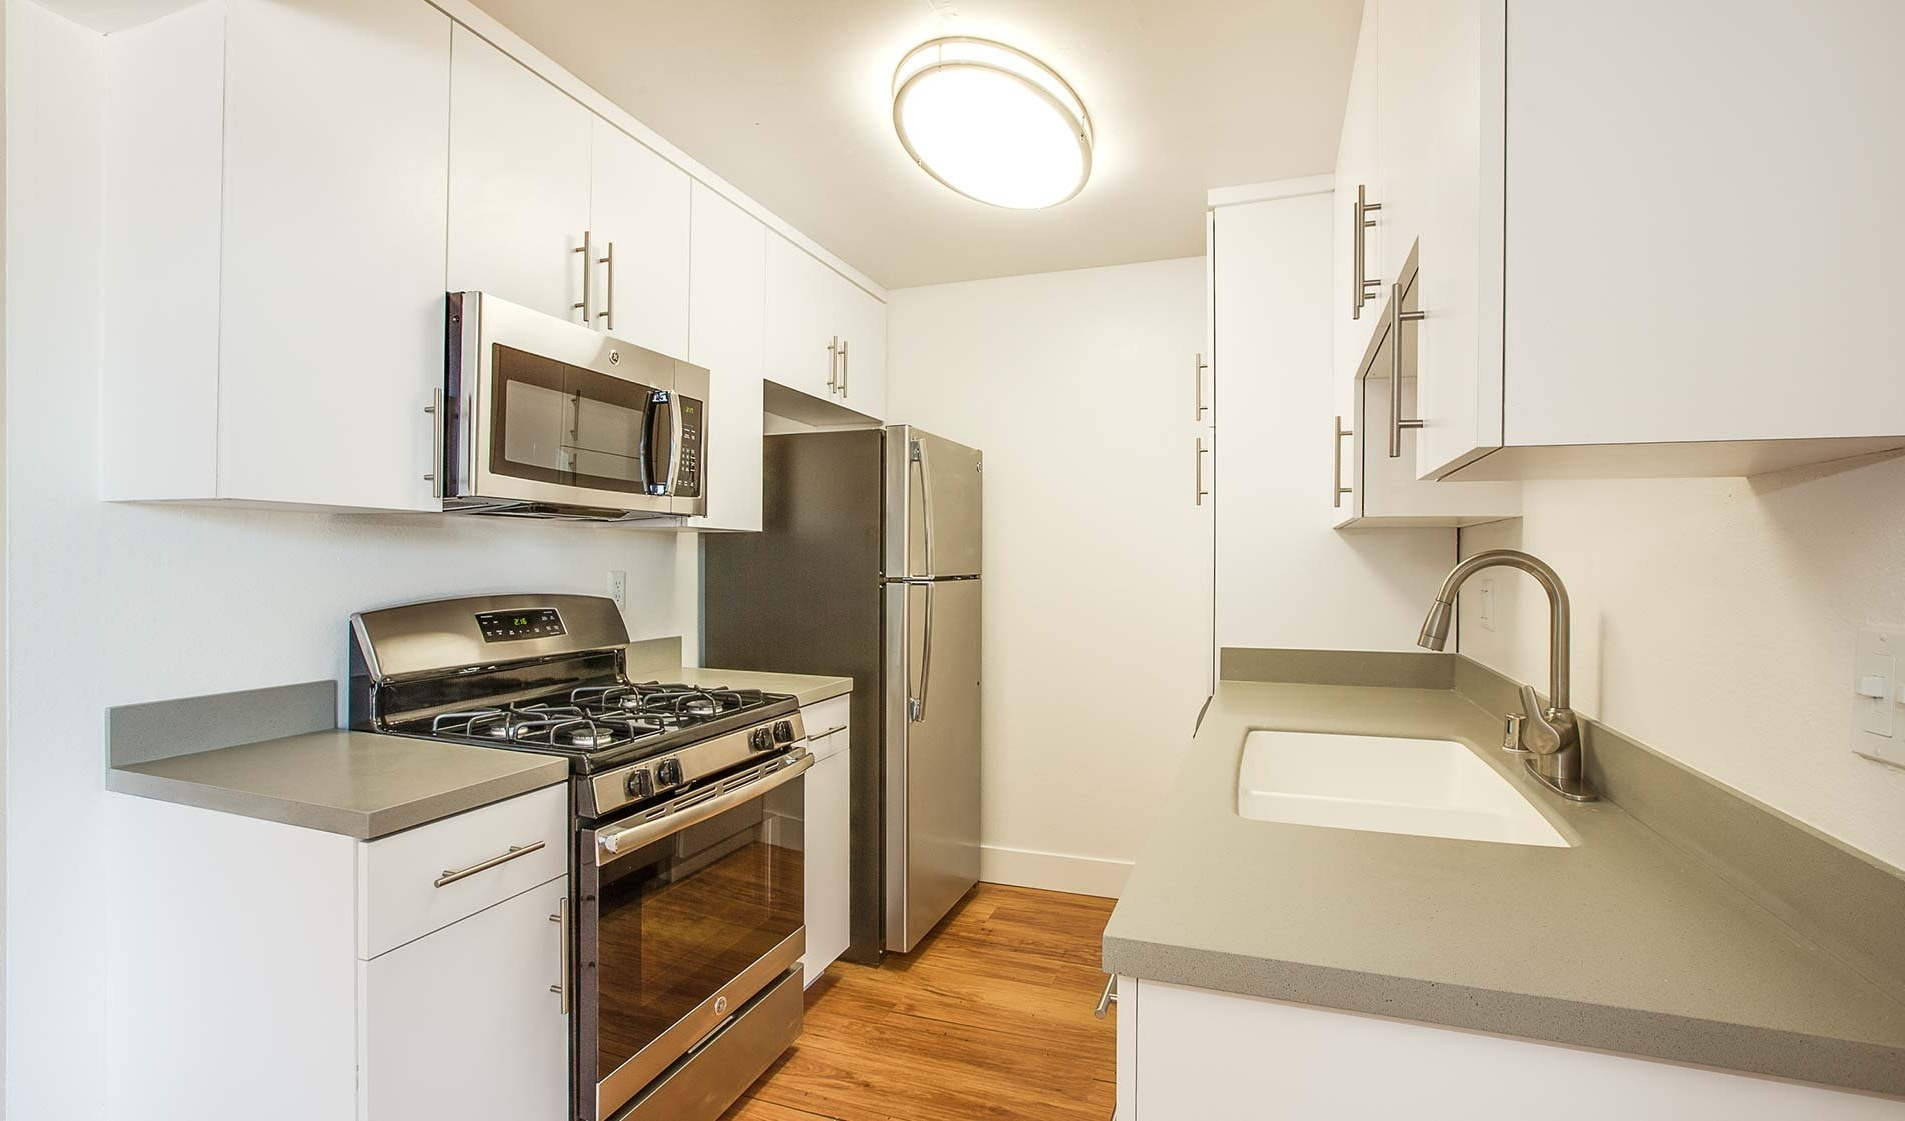 20 Best Apartments In Bellflower, CA (with pictures)!